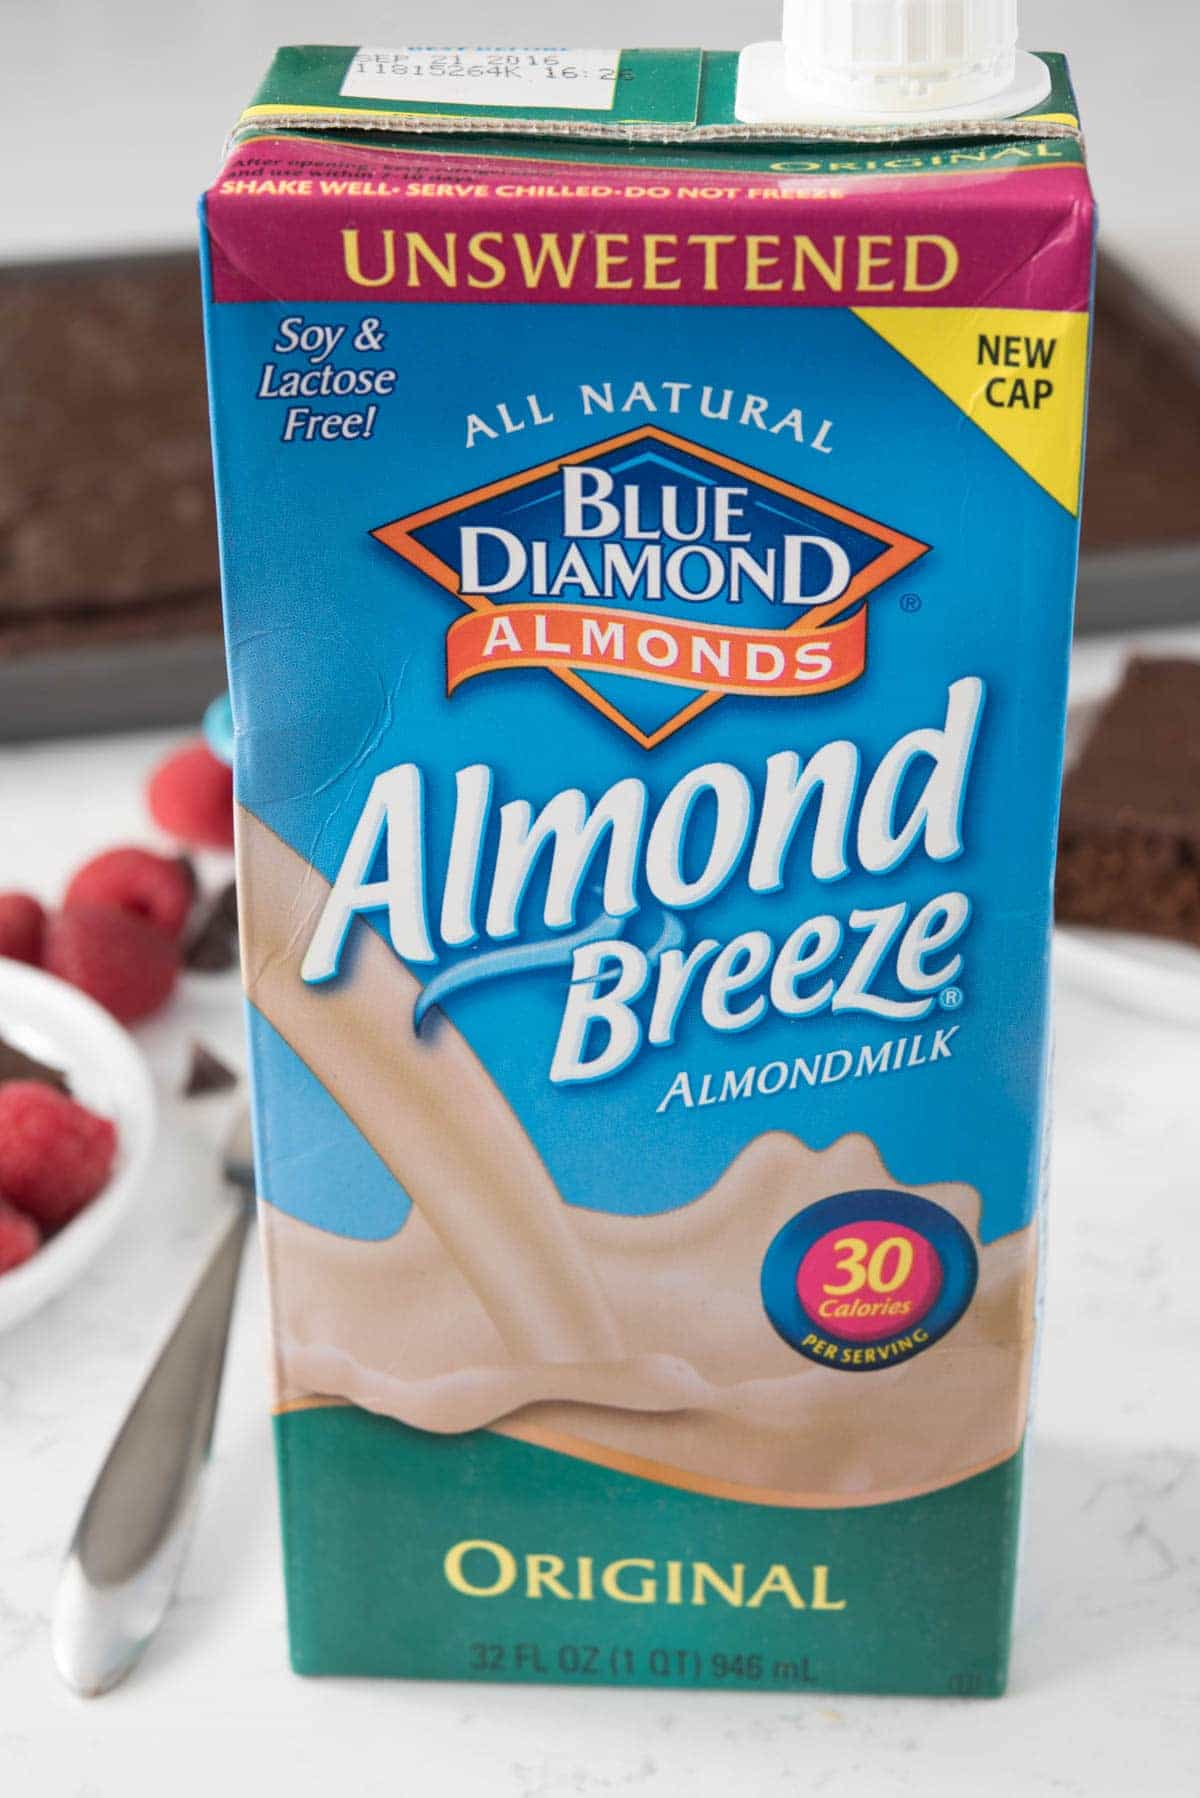 Unsweetened Almond Breeze Almond Milk